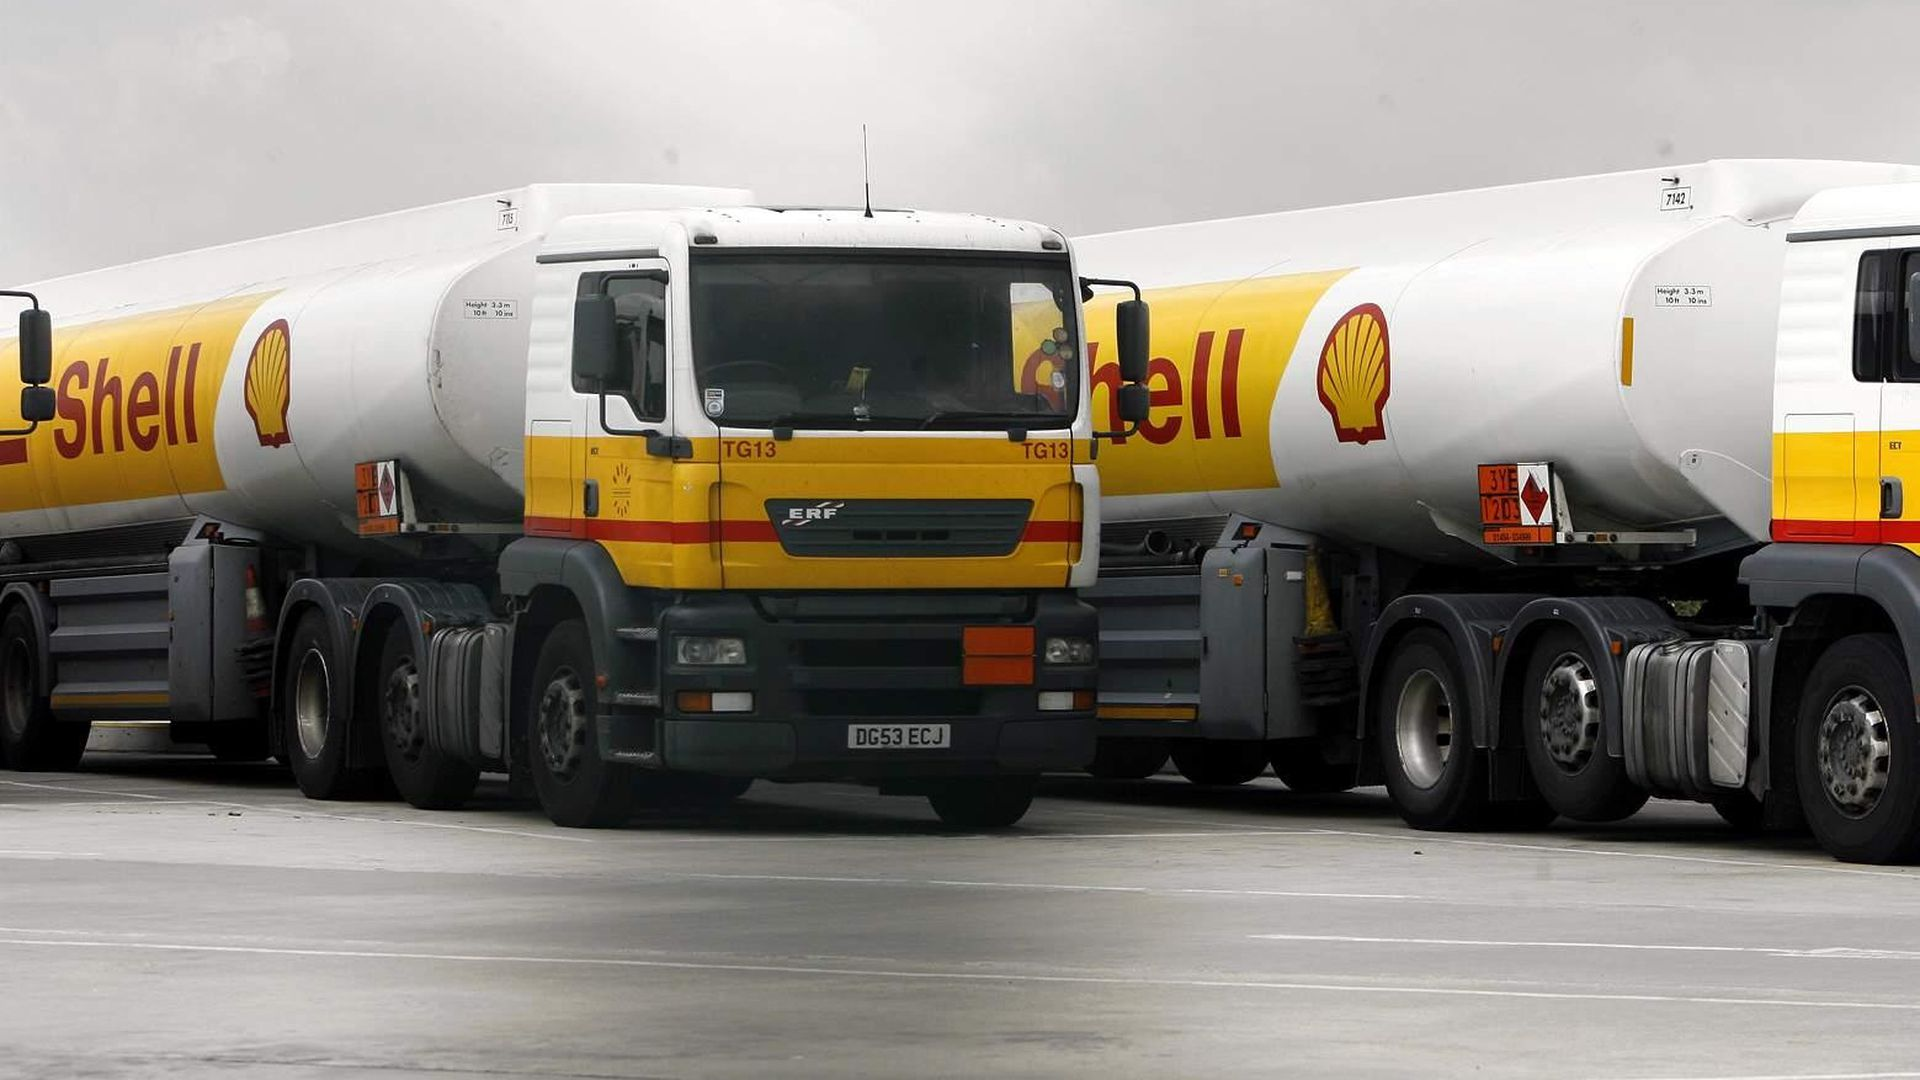 Shell tanker trucks